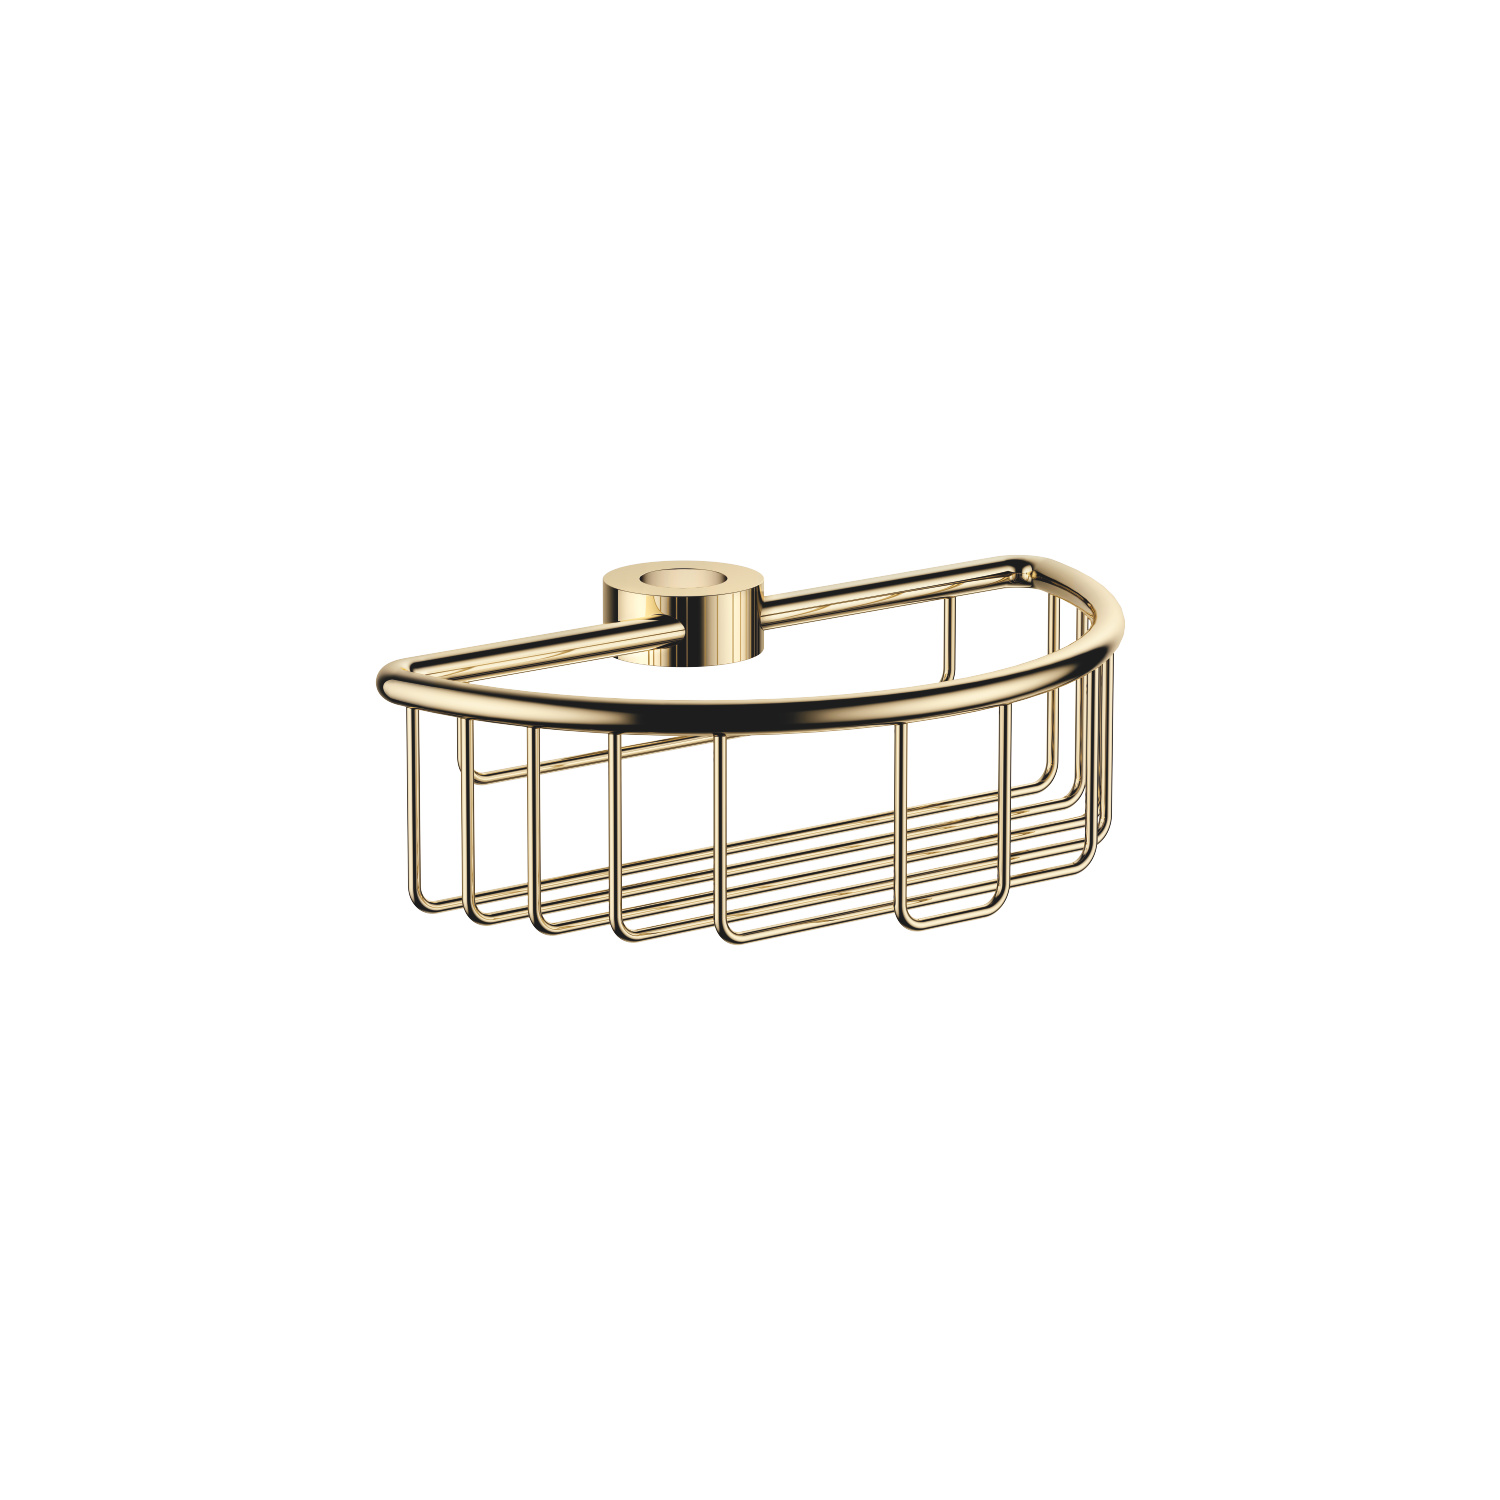 Shower basket for subsequent mounting on riser - Durabrass